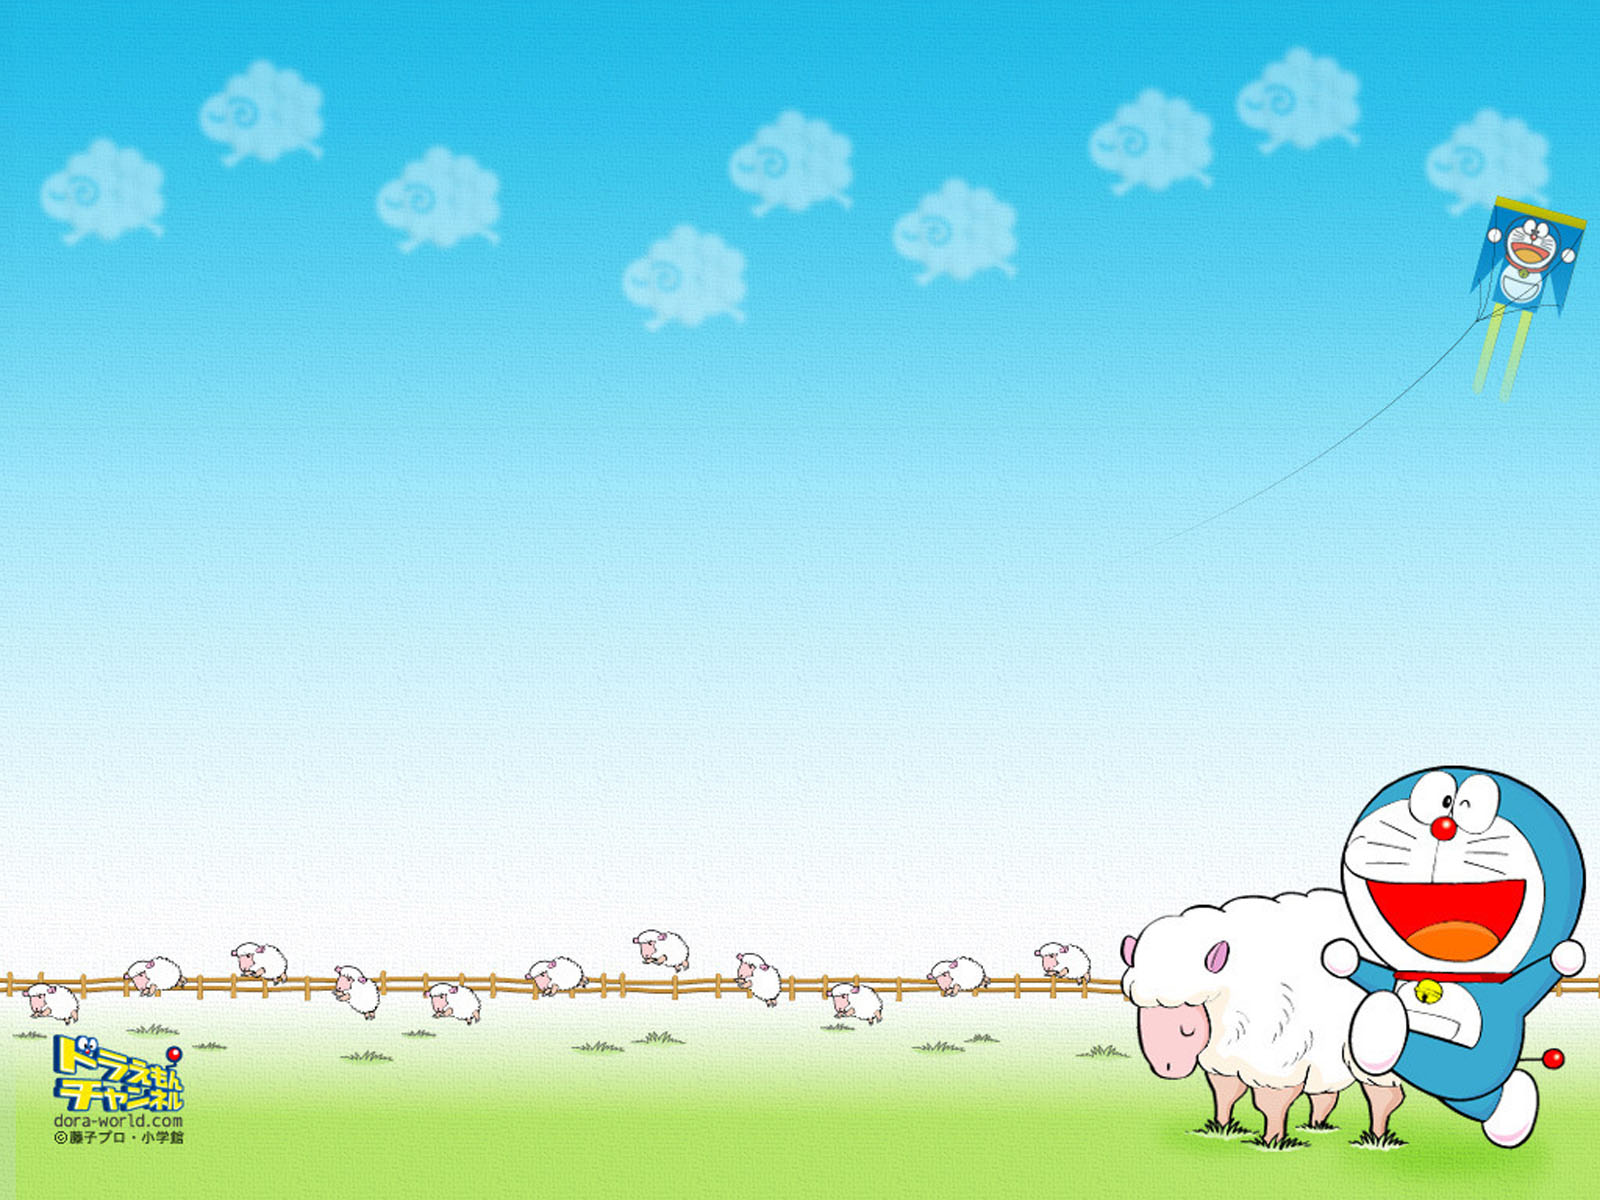 Doraemon Wallpaper Free Download Wallpapers Doraemon